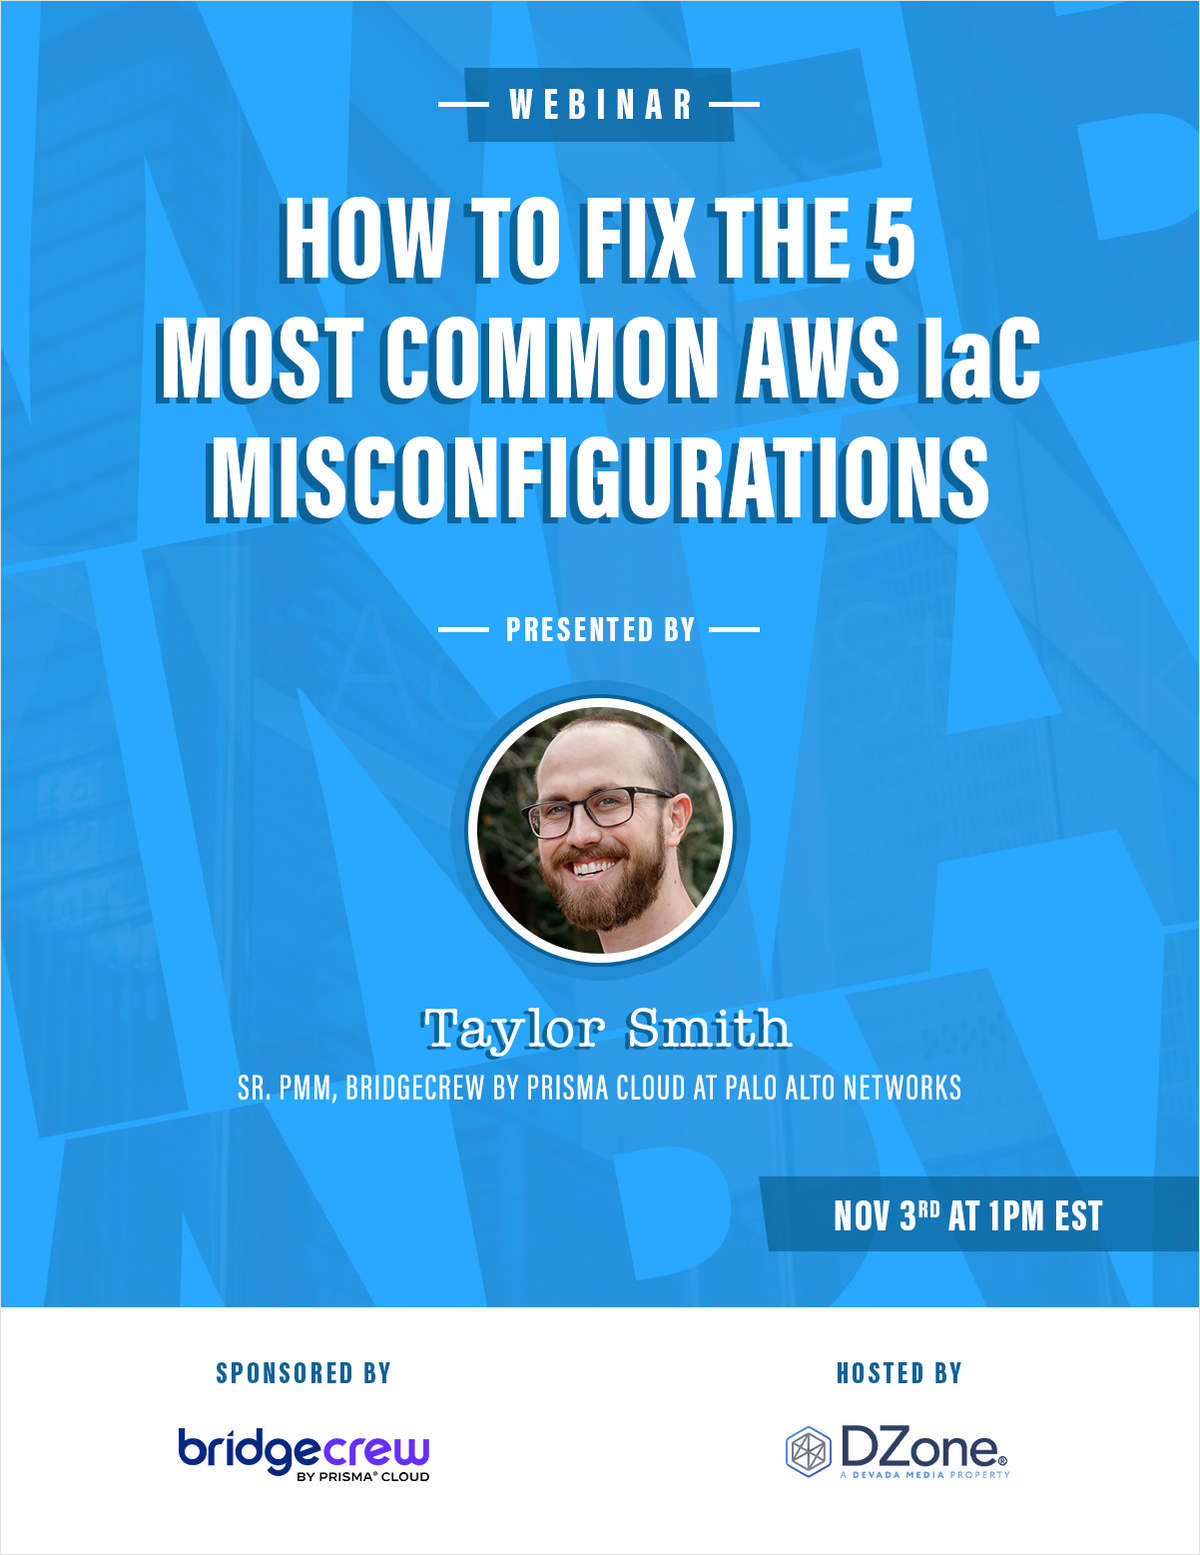 How to Fix the 5 Most Common AWS IaC Misconfigurations